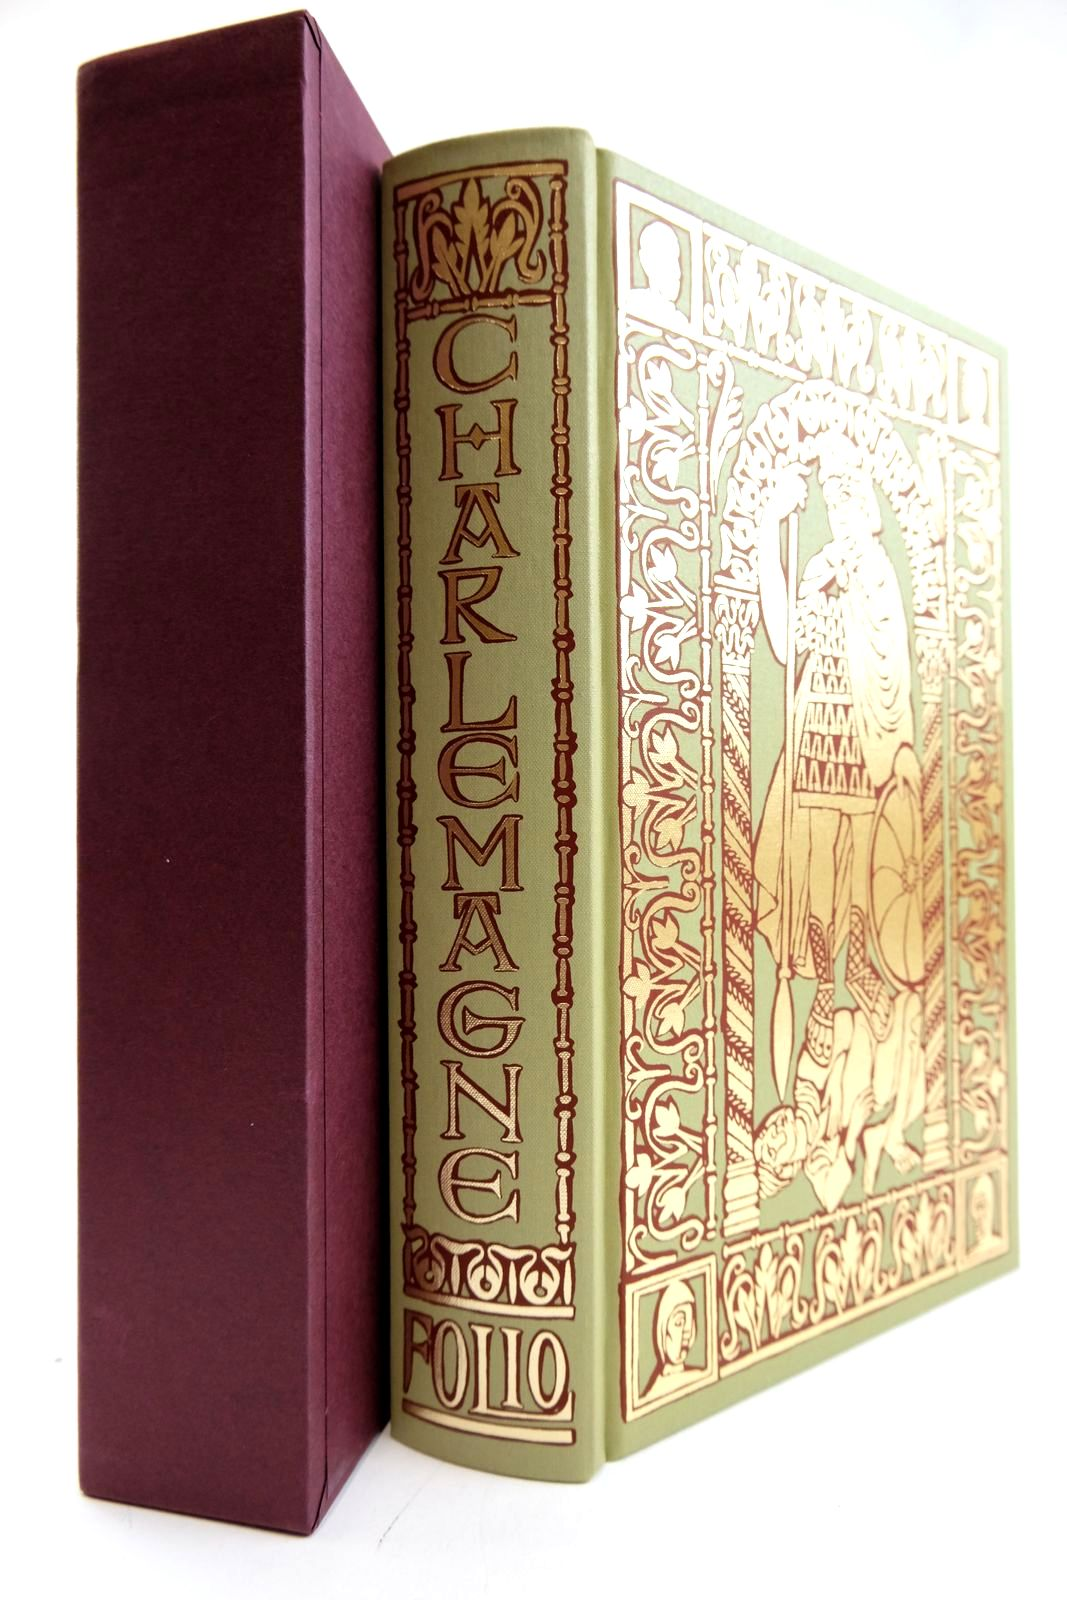 Photo of CHARLEMAGNE FATHER OF A CONTINENT written by Barbero, Alessandro Cameron, Allan published by Folio Society (STOCK CODE: 2133224)  for sale by Stella & Rose's Books